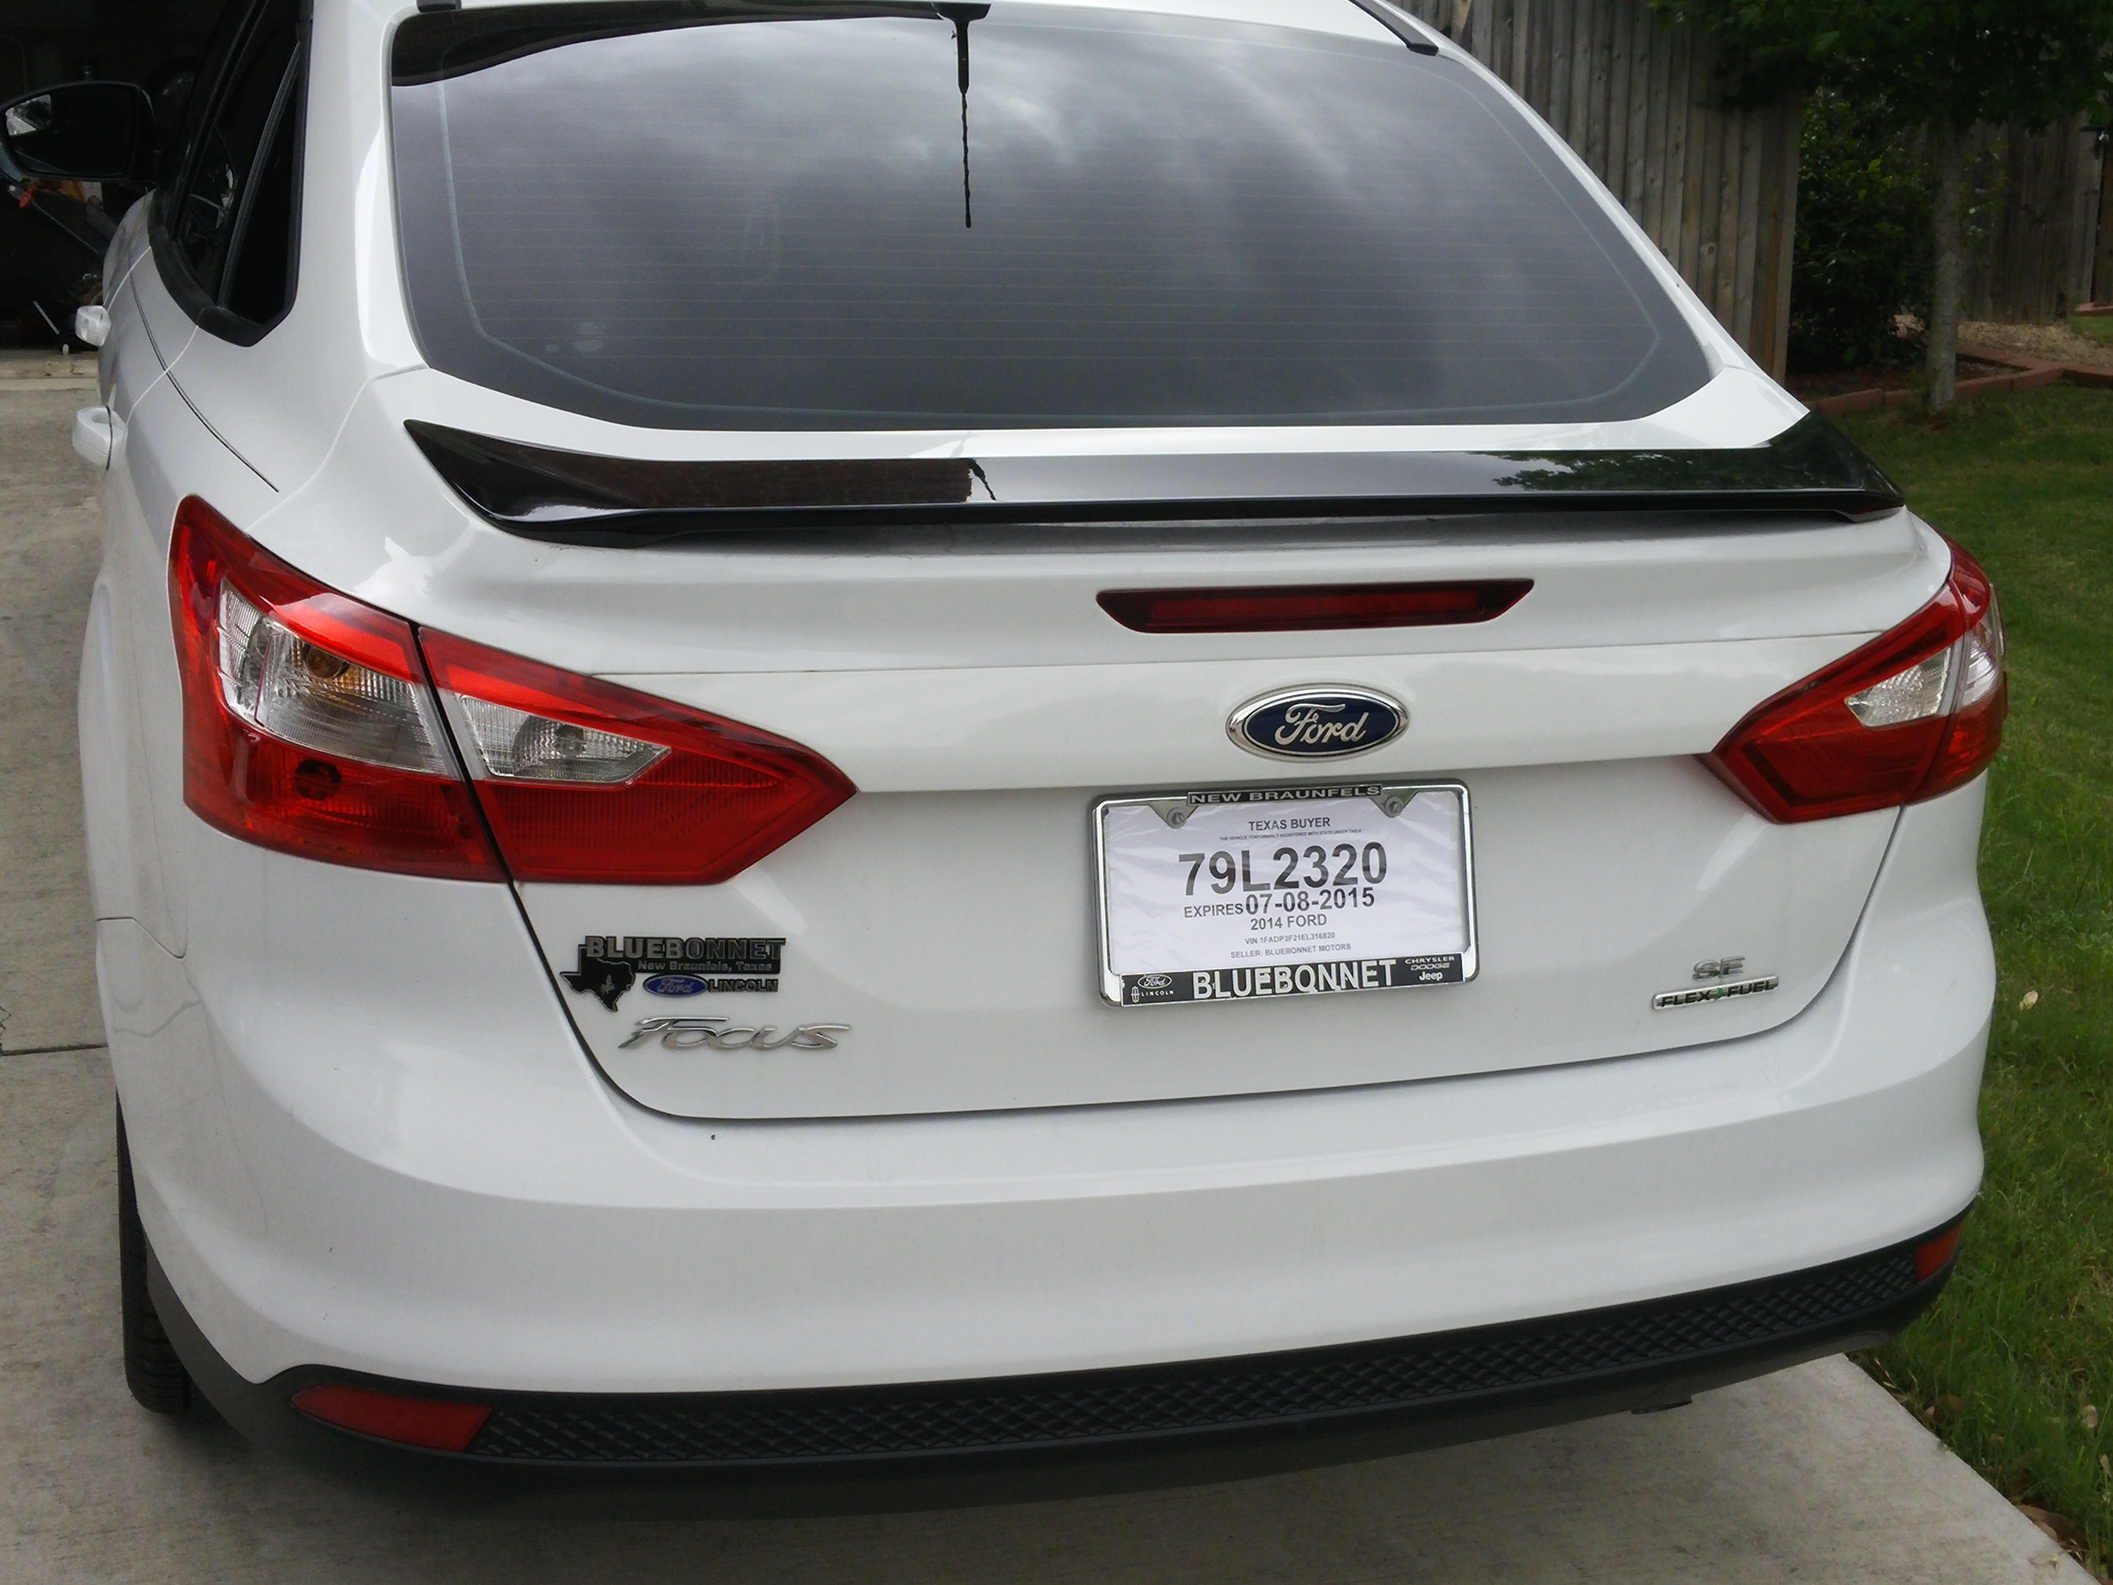 New 2014 ford focus se with black package 20150510_132144 jpg